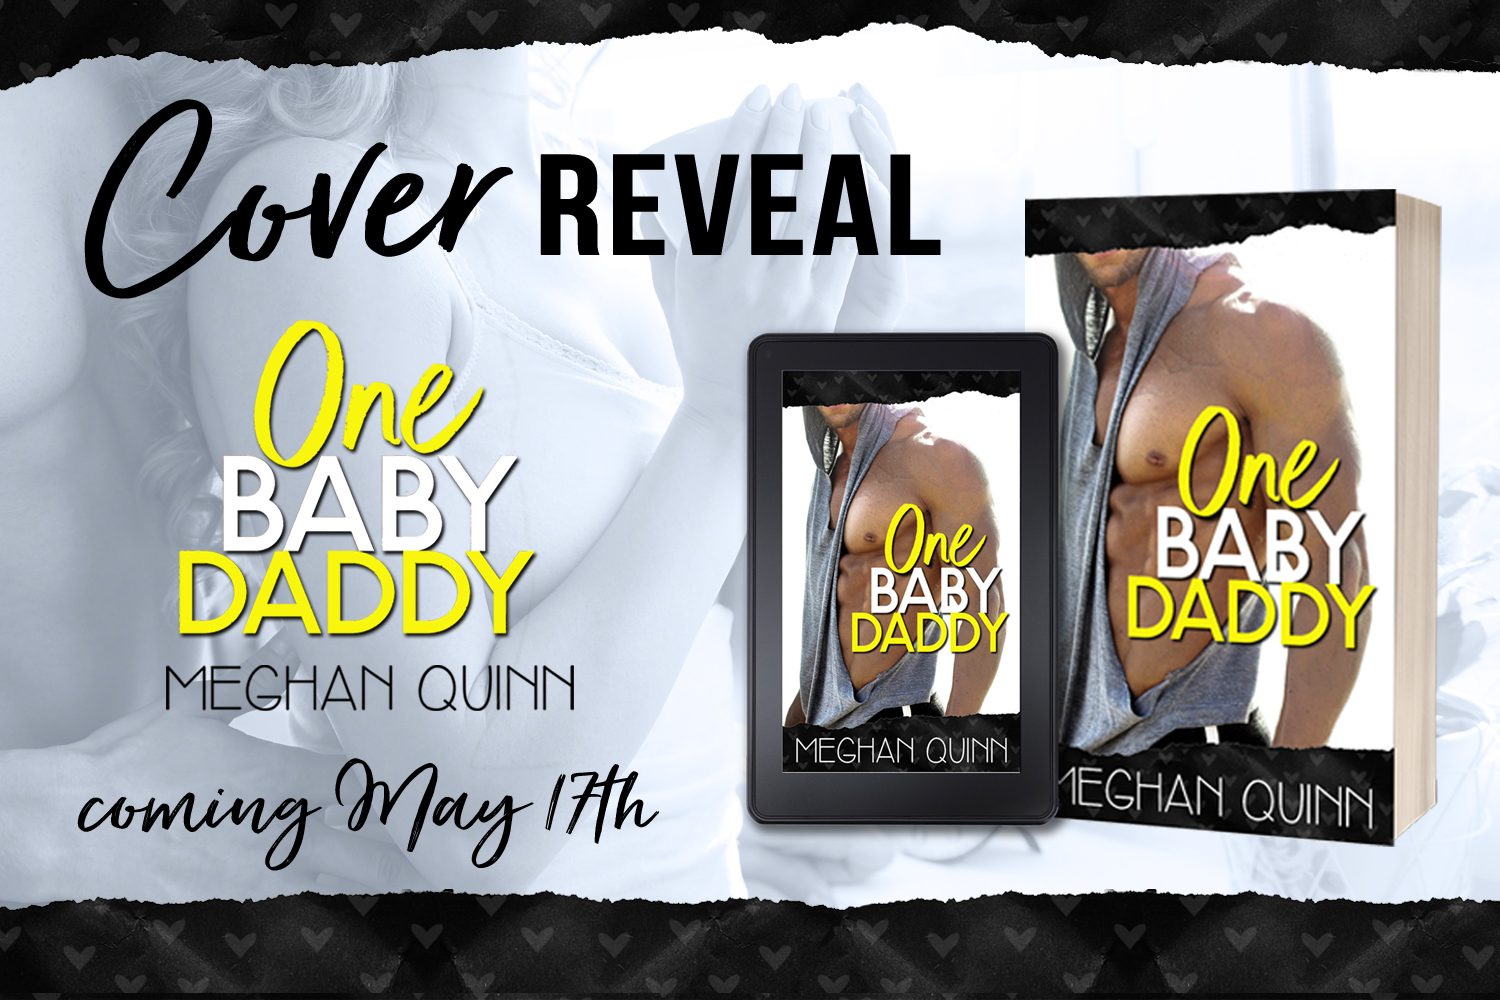 One Baby Daddy cover reveal